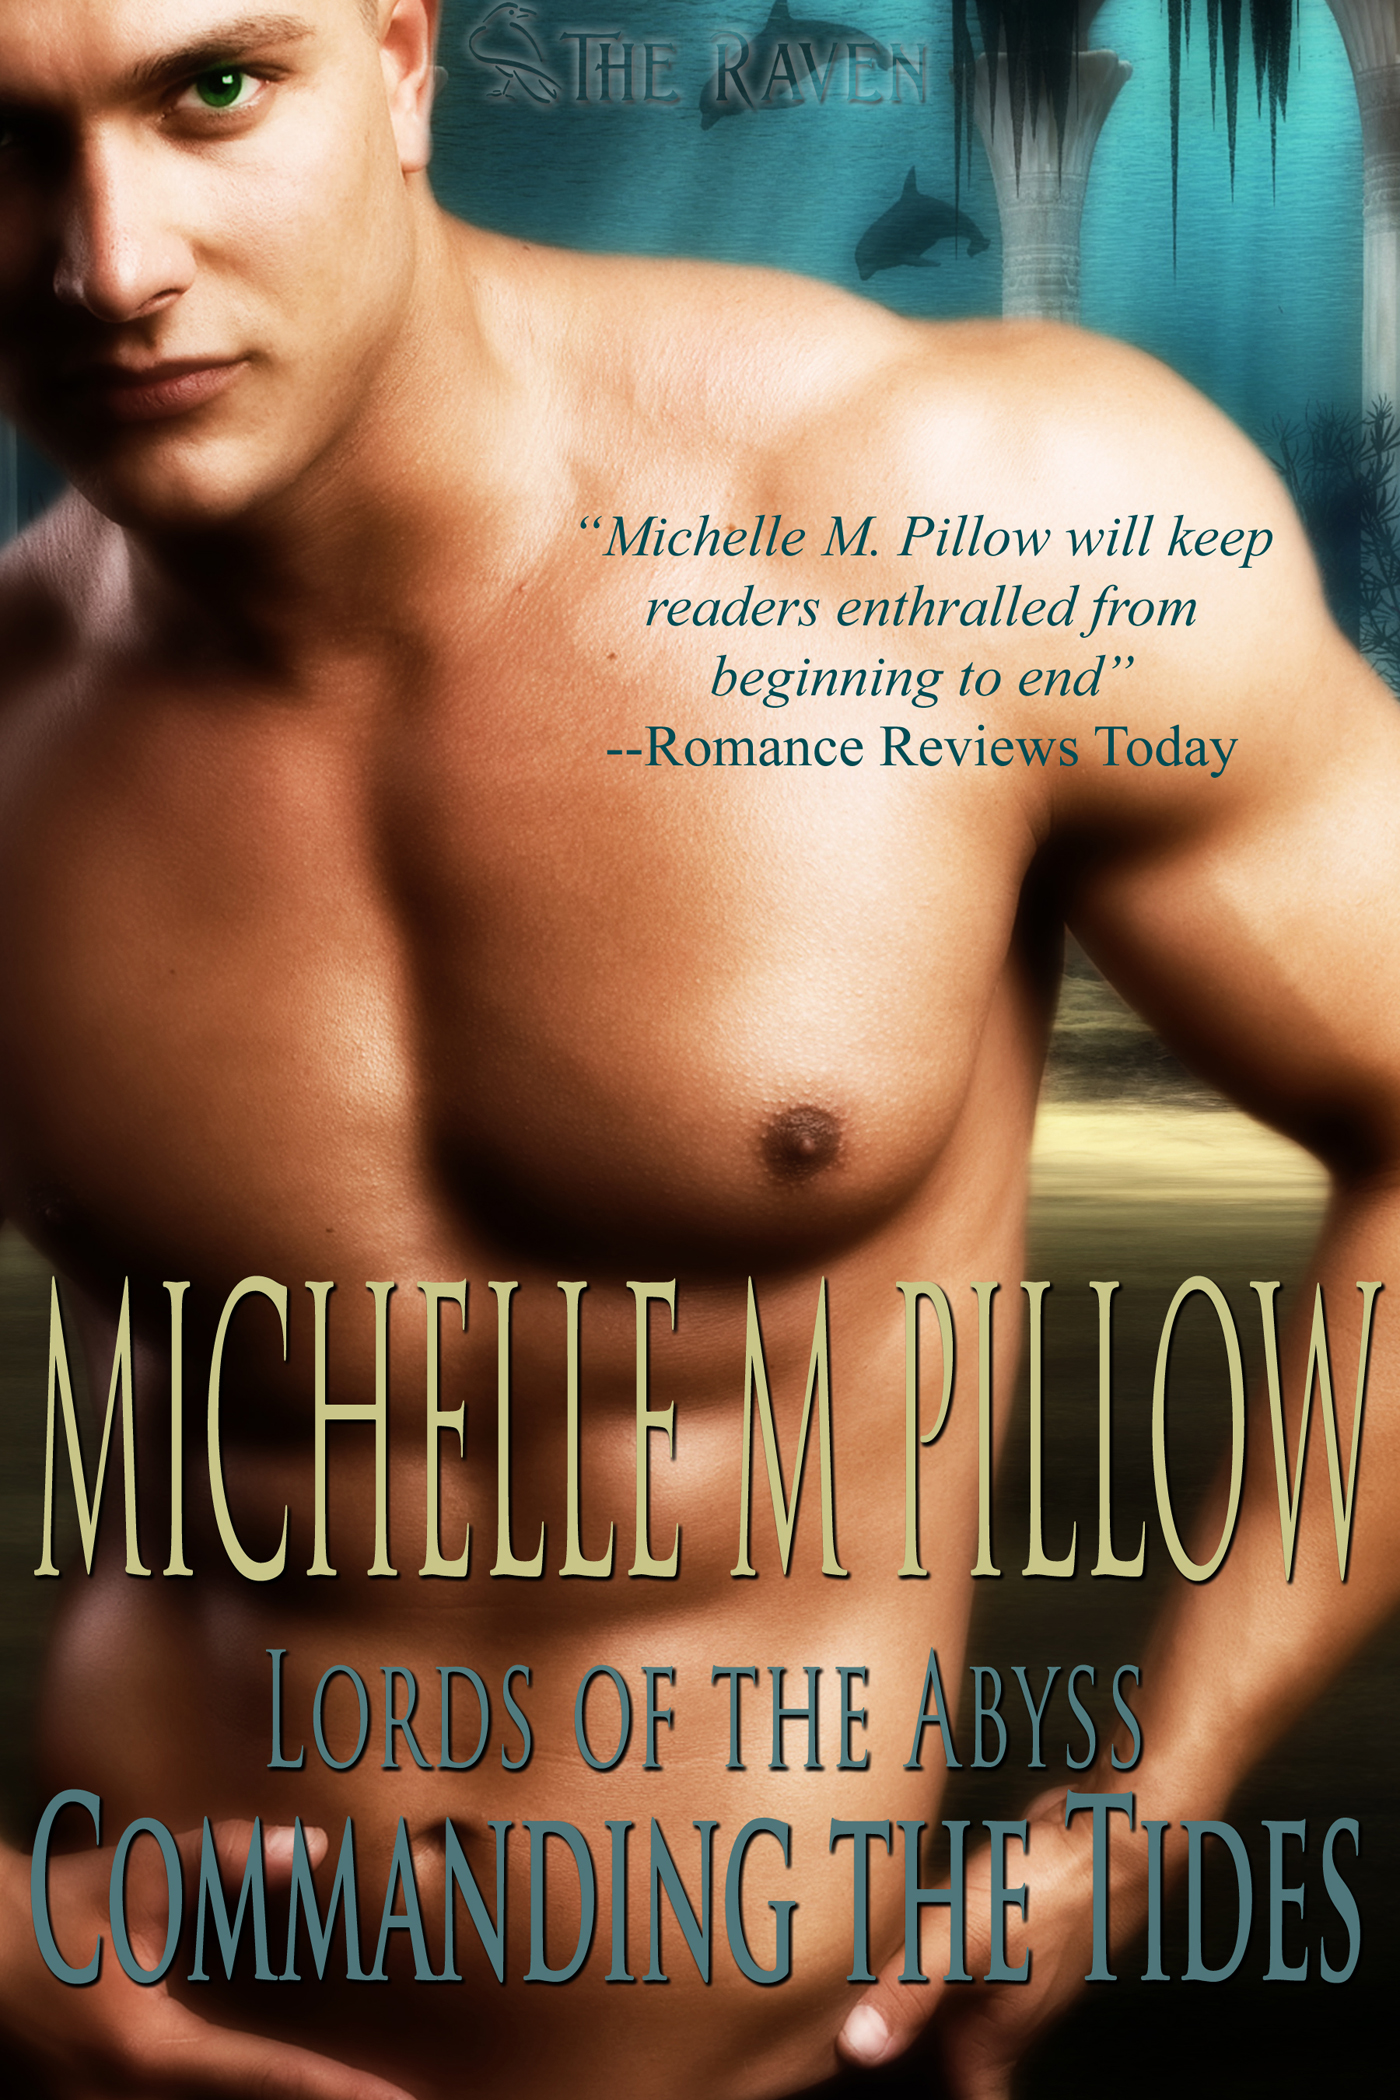 Michelle M. Pillow - Commanding the Tides (Lords of the Abyss II)